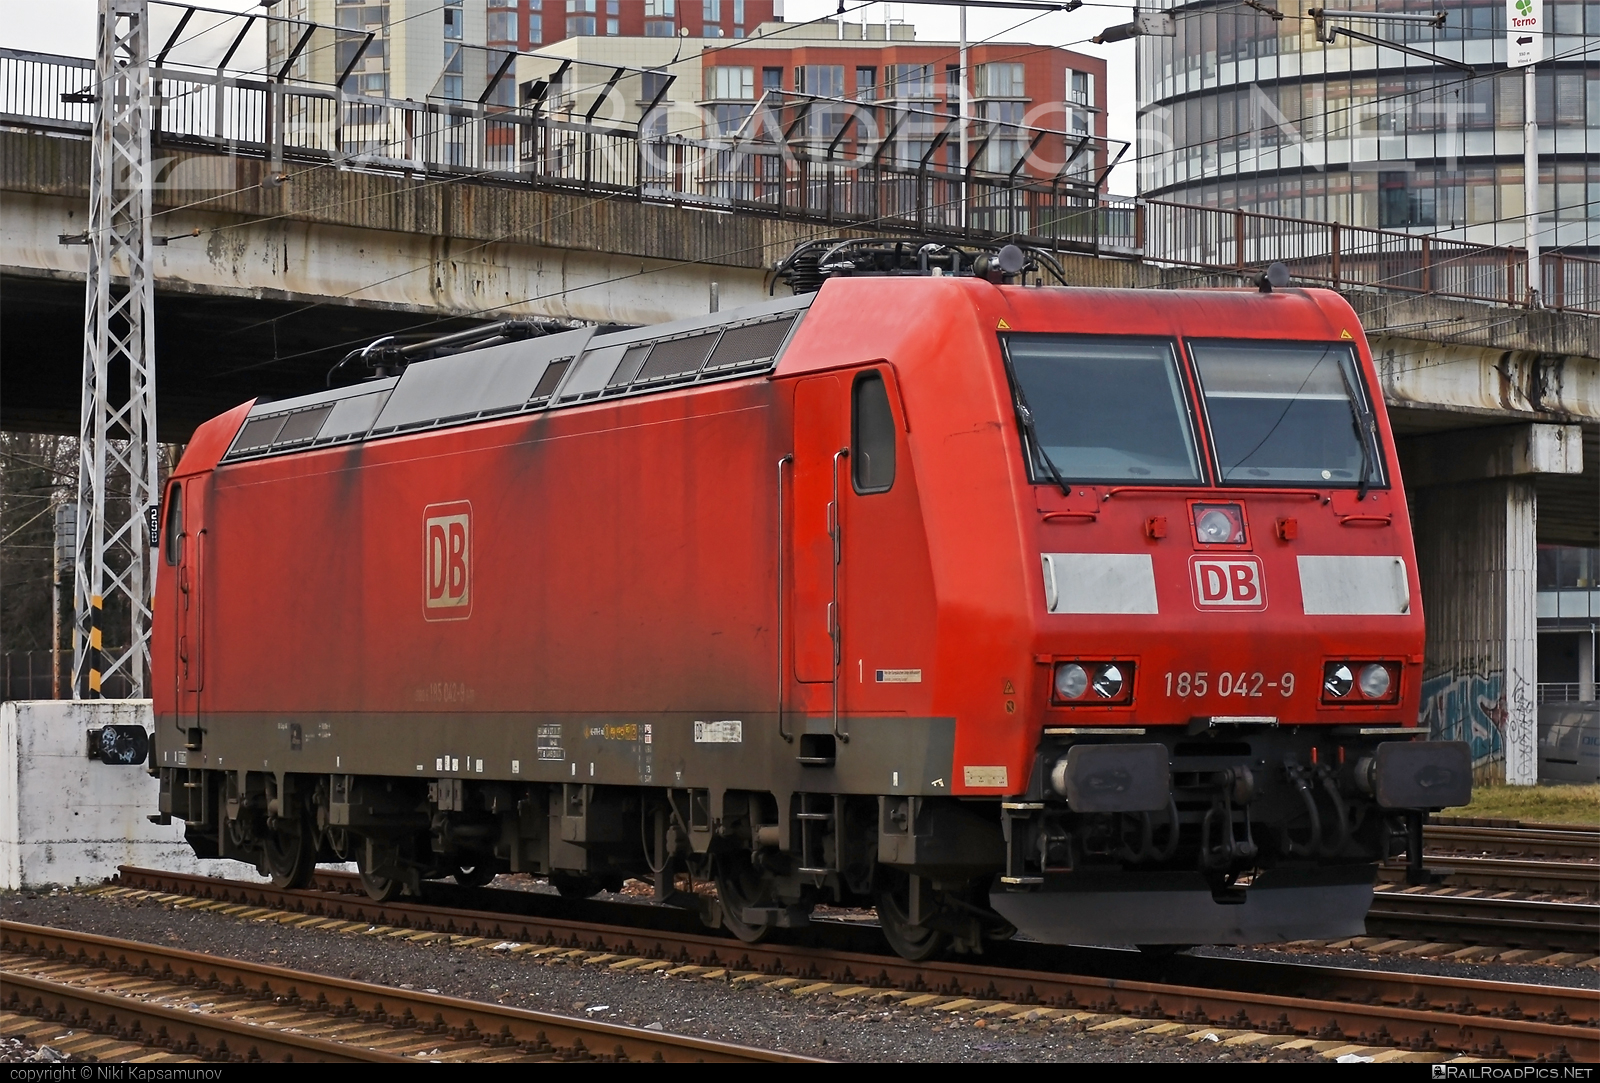 Bombardier TRAXX F140 AC1 - 185 042-9 operated by DB Cargo AG #bombardier #bombardiertraxx #db #dbcargo #dbcargoag #deutschebahn #traxx #traxxf140 #traxxf140ac #traxxf140ac1